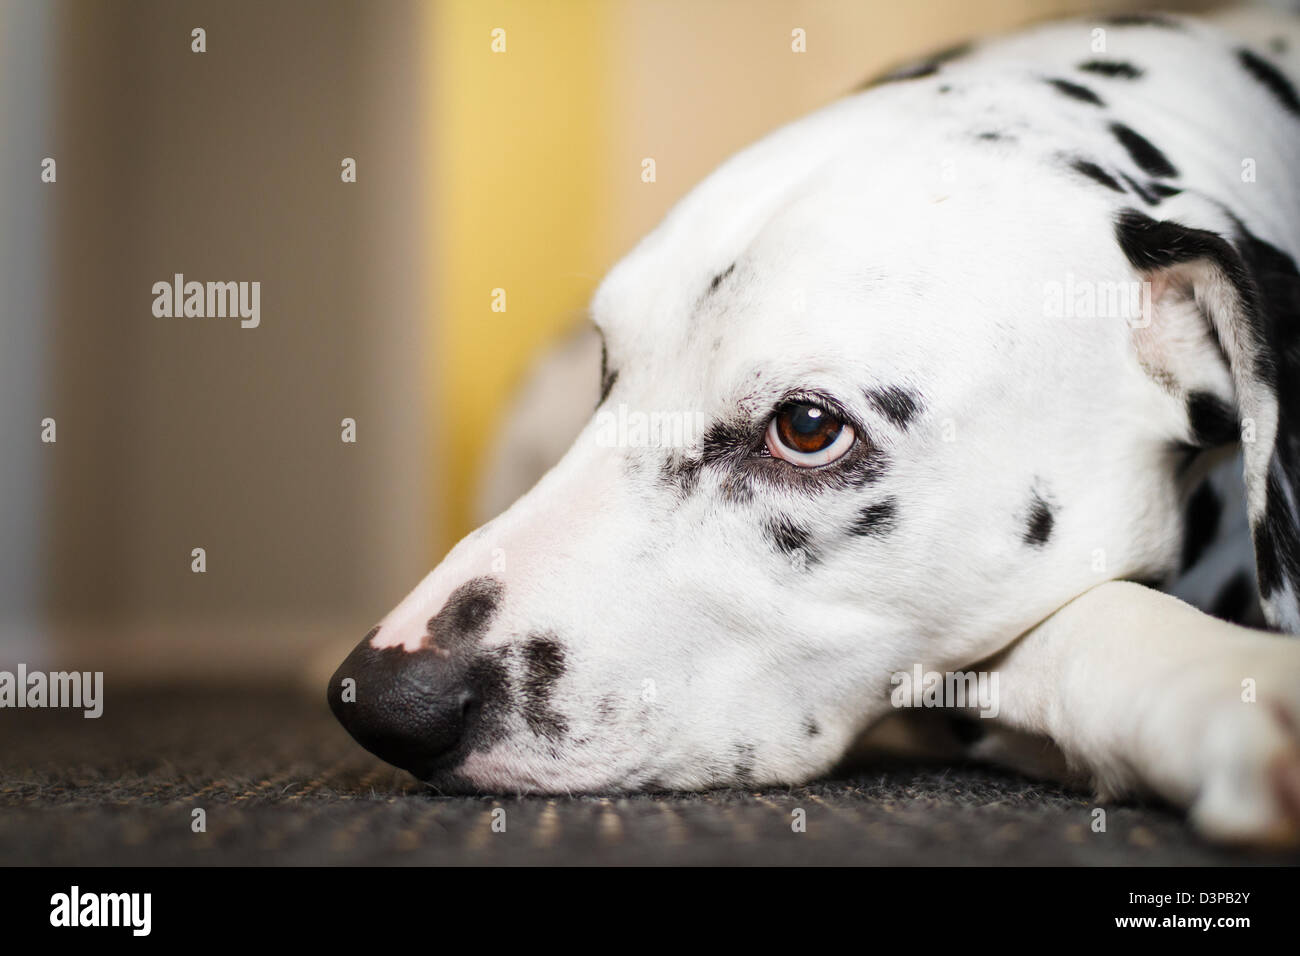 Bored Dalmatian dreaming and resting on the floor - Stock Image